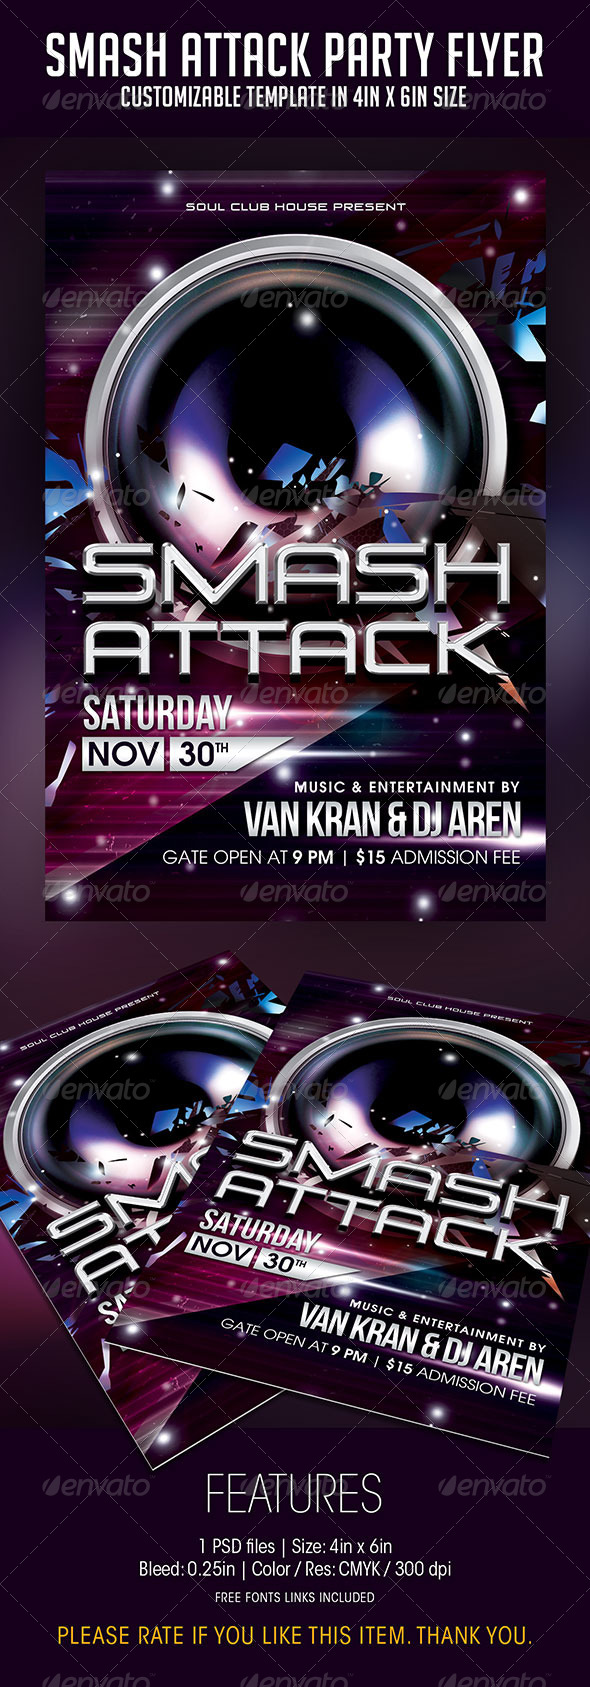 Smash Attack Party Flyer - Clubs & Parties Events